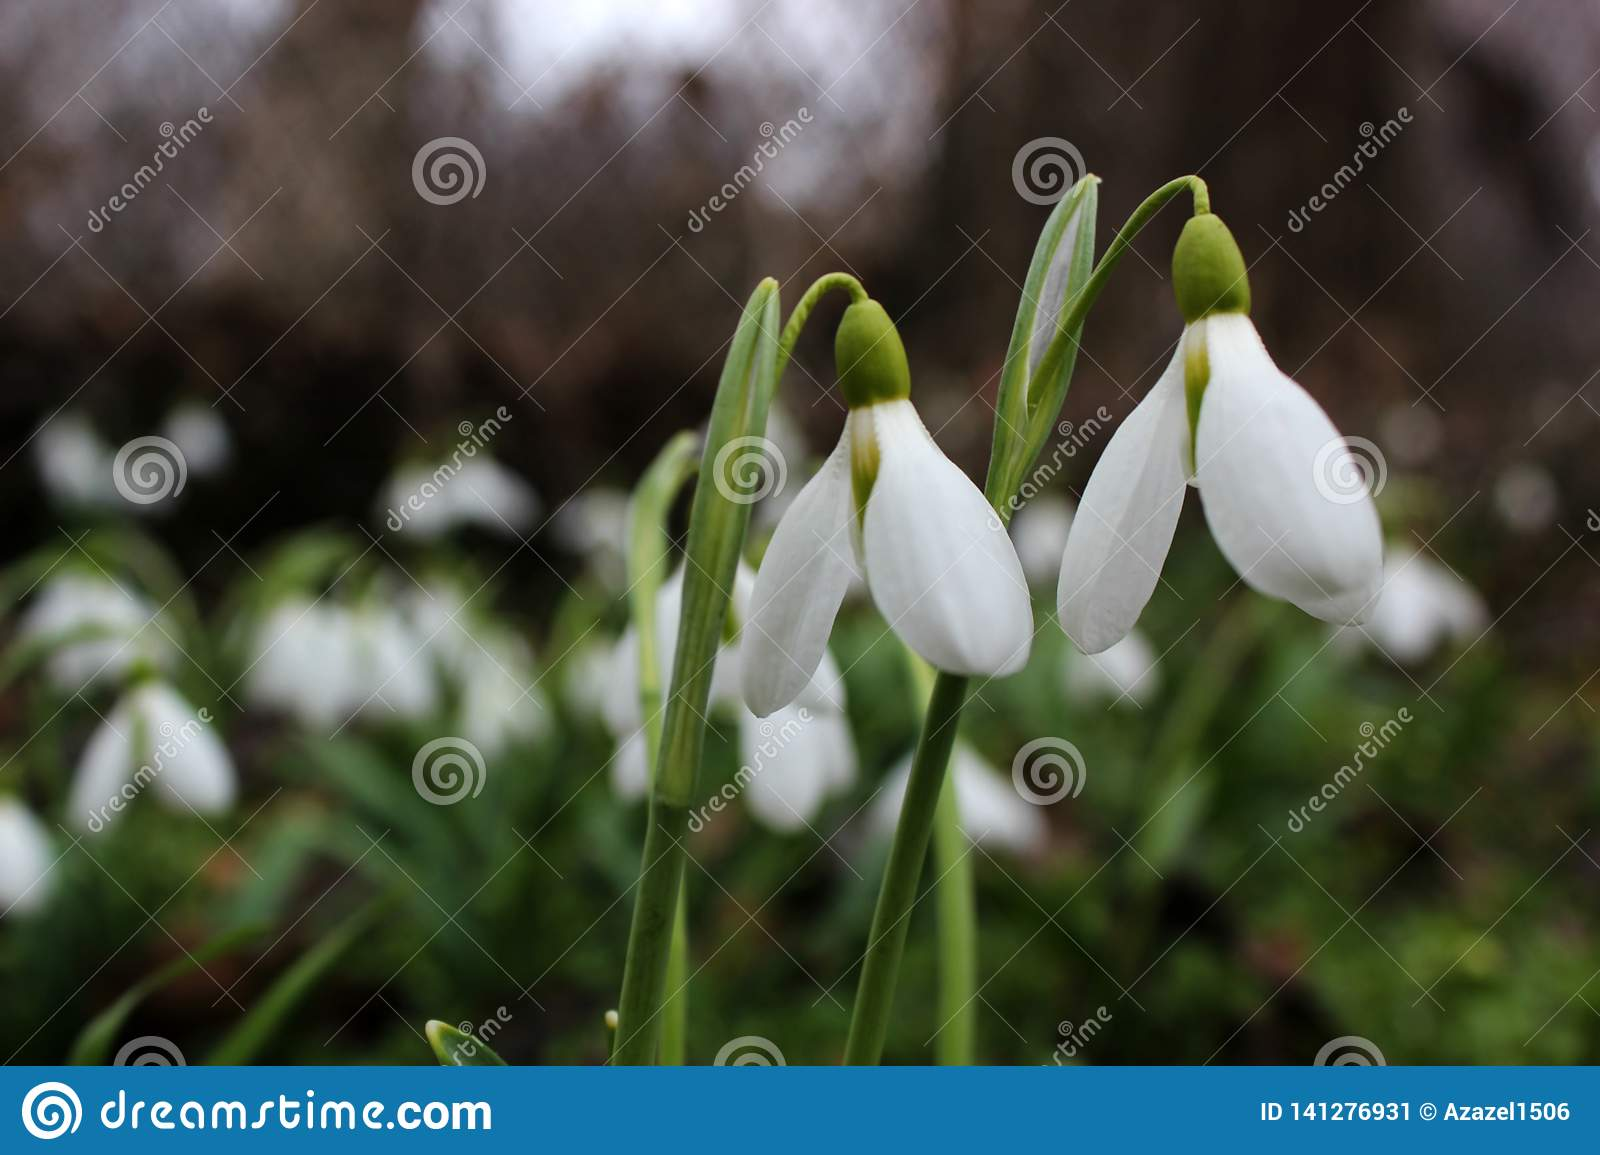 Spring snowdrops bloom, white water lilies grow